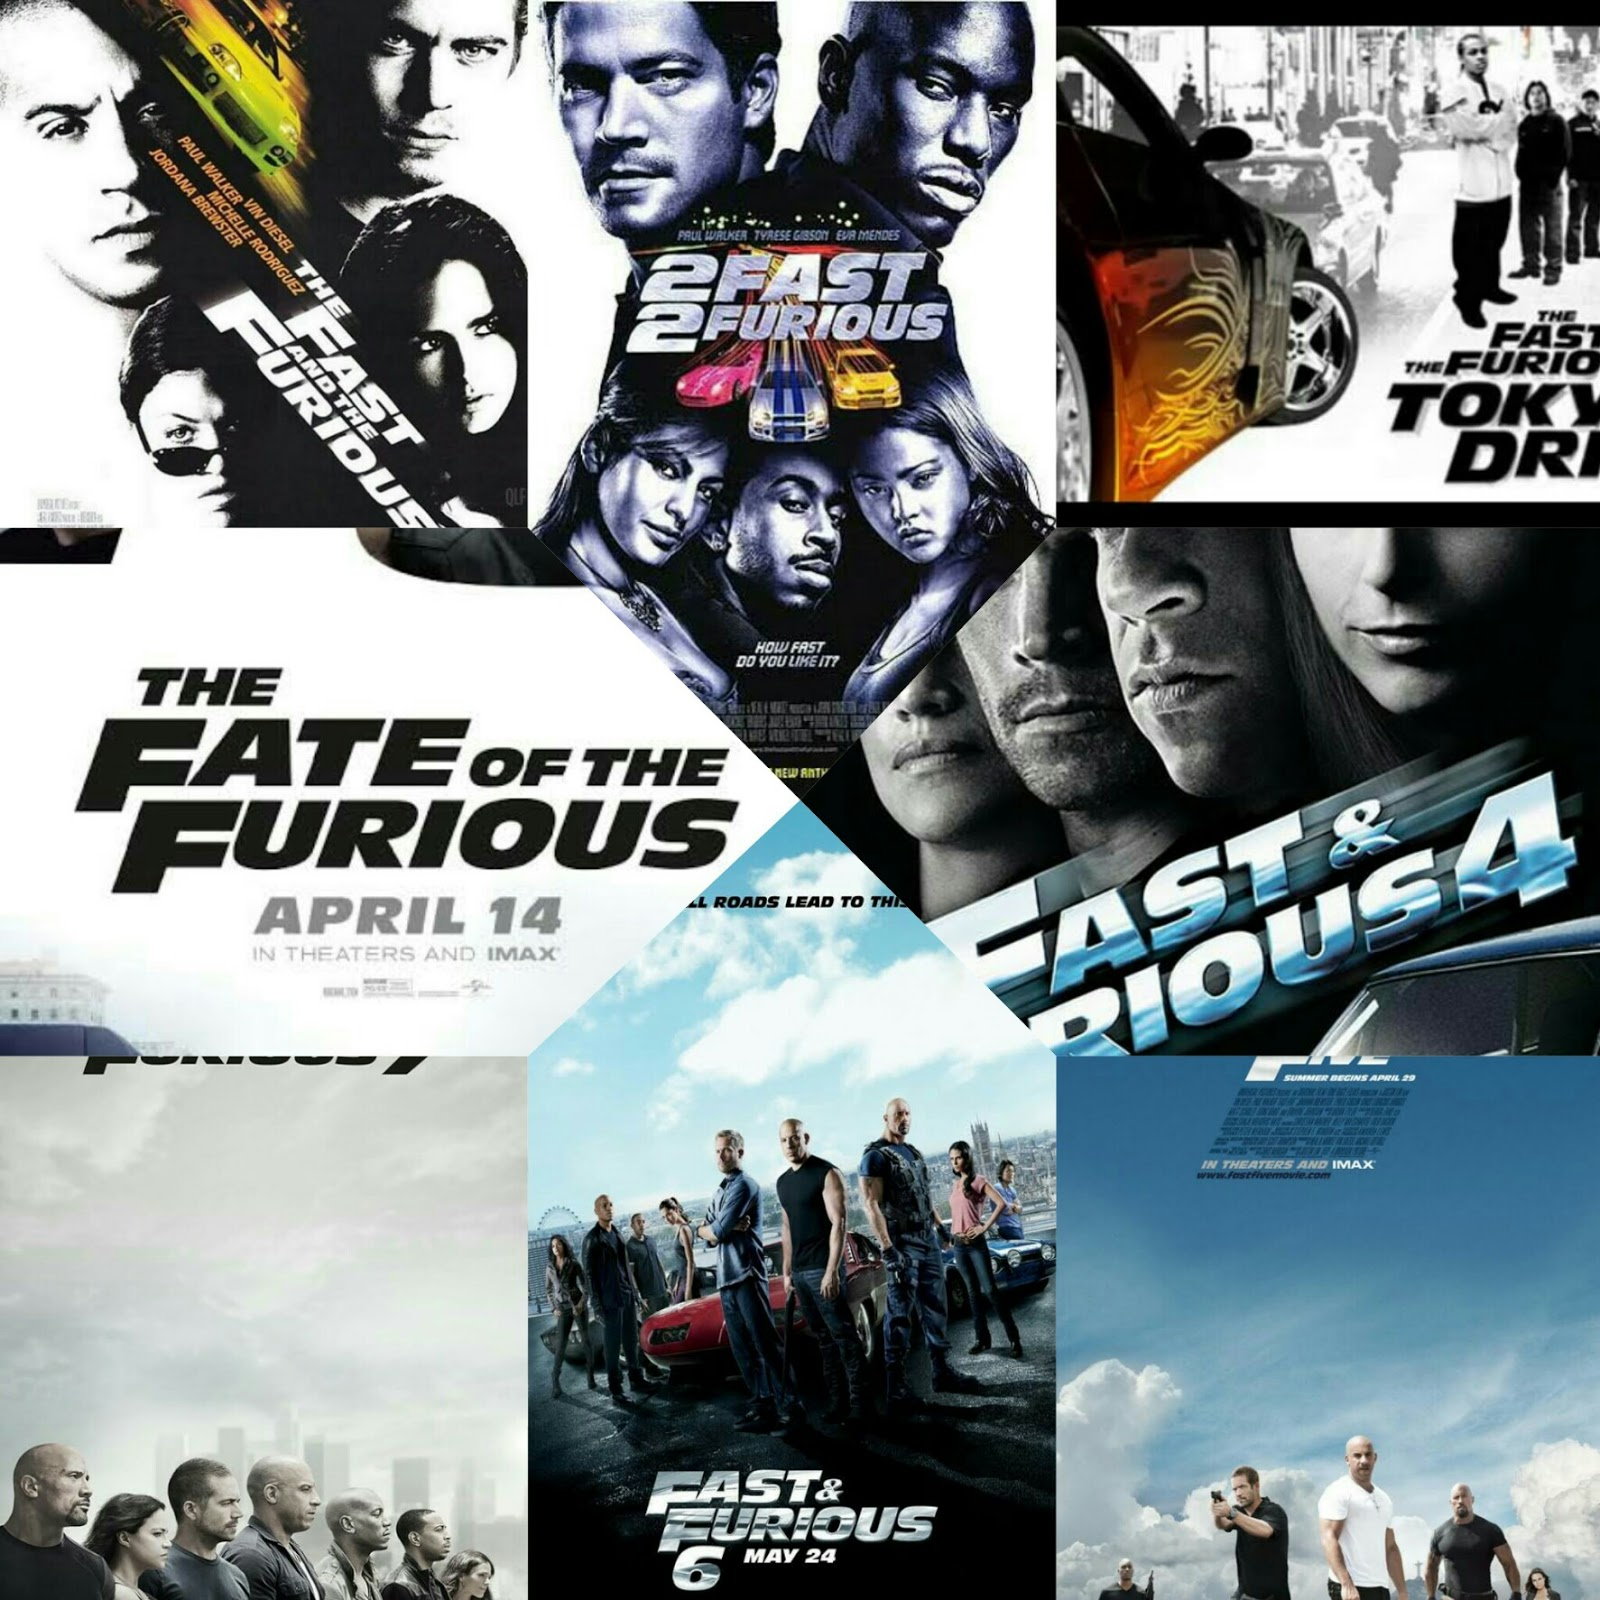 fast and furious 1 full movie free download mp4